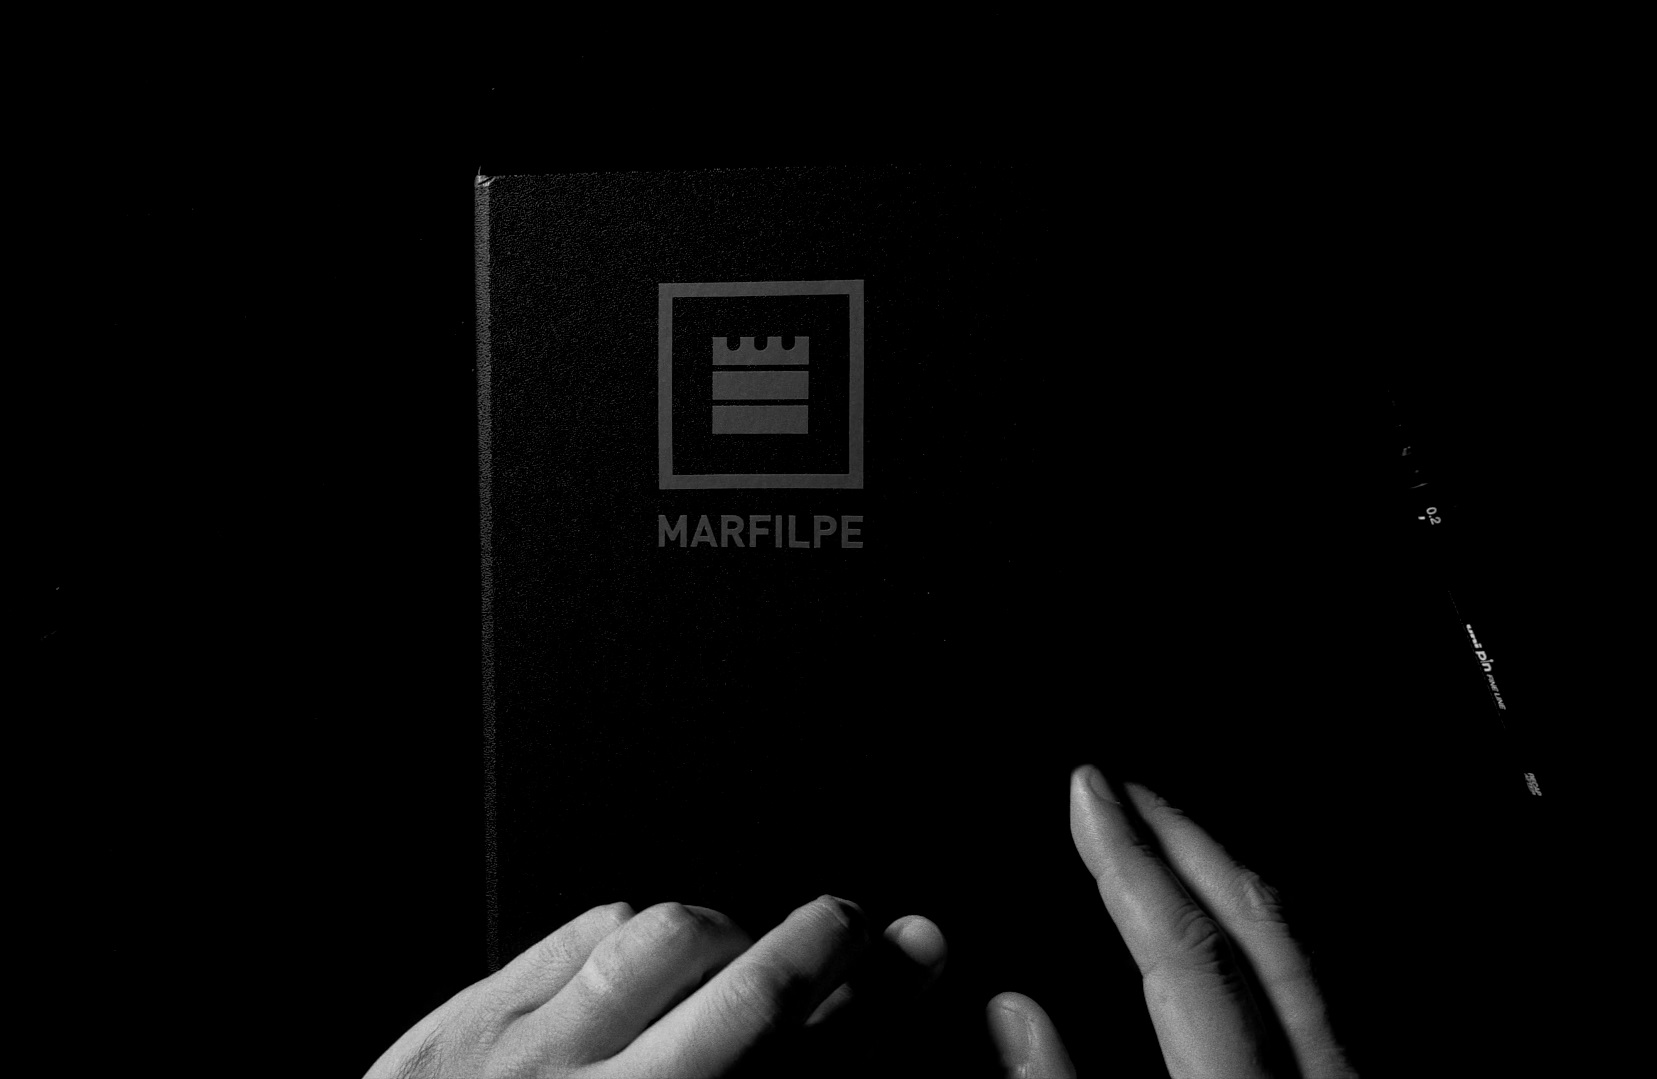 Marfilpe Contrast